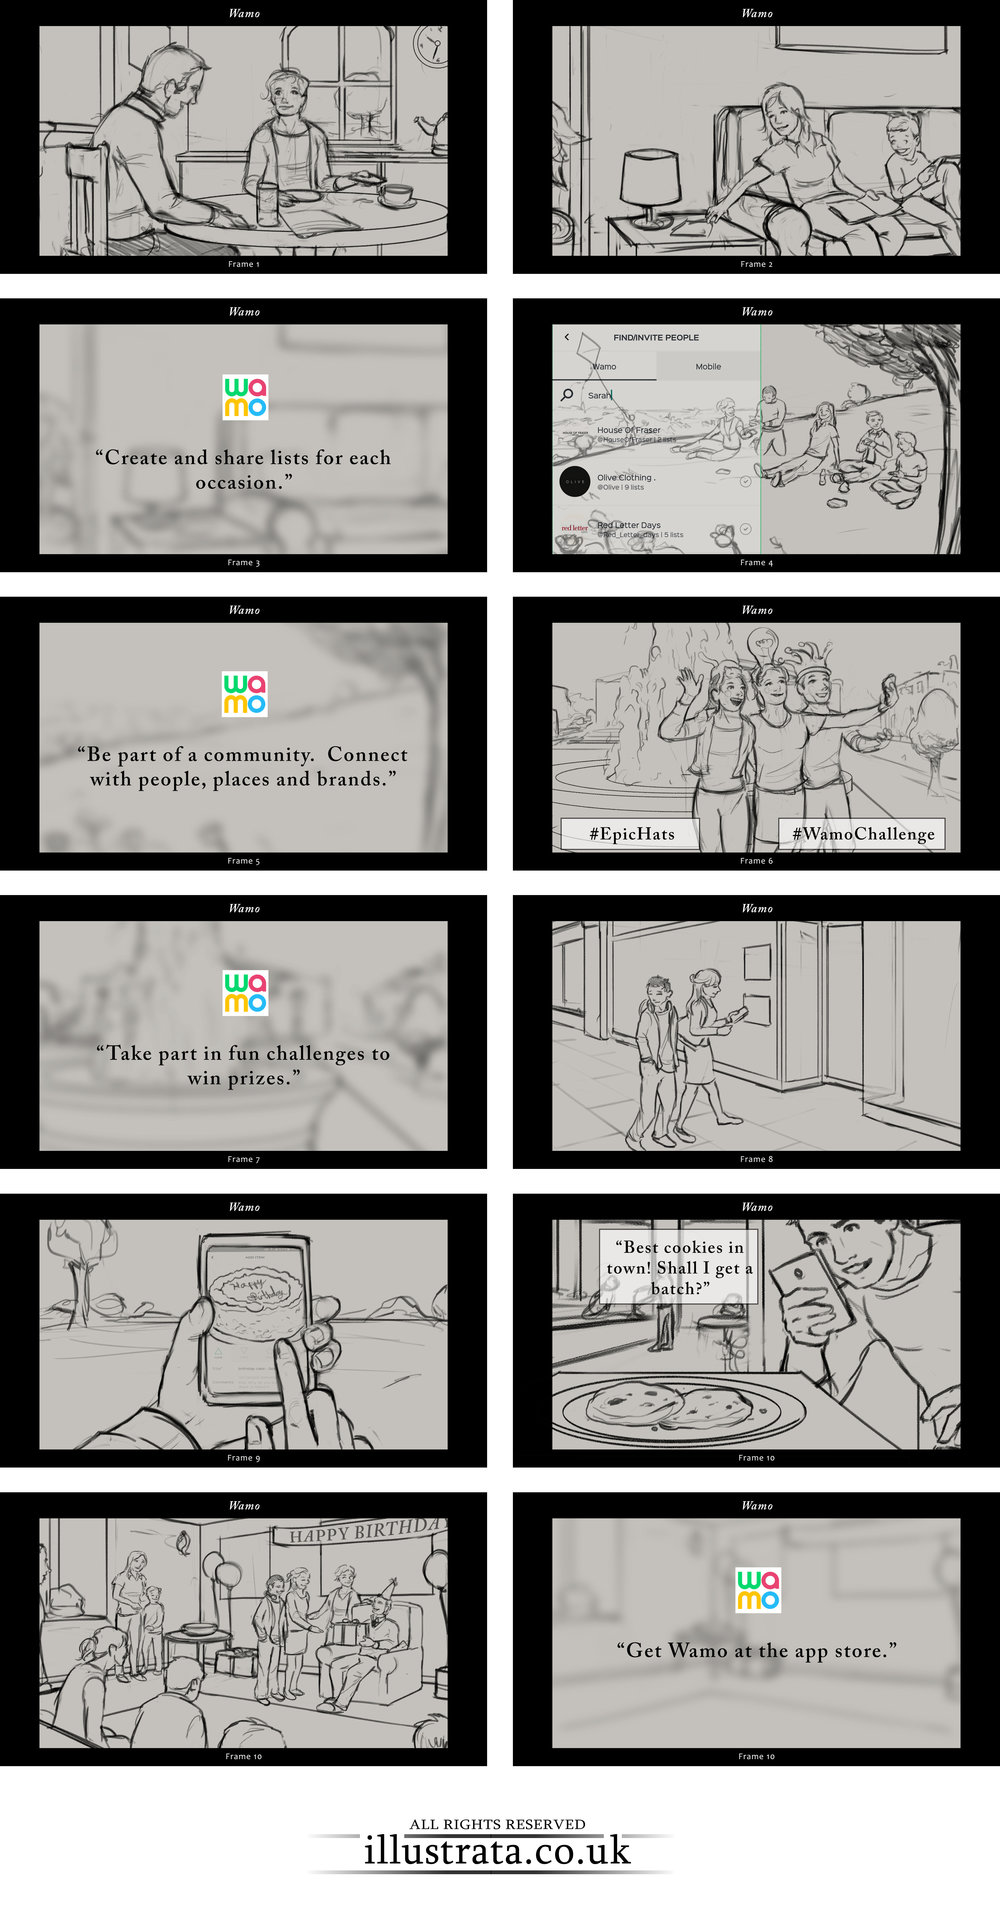 Storyboards WAMO 1-12 SKETCHES tgs.jpg